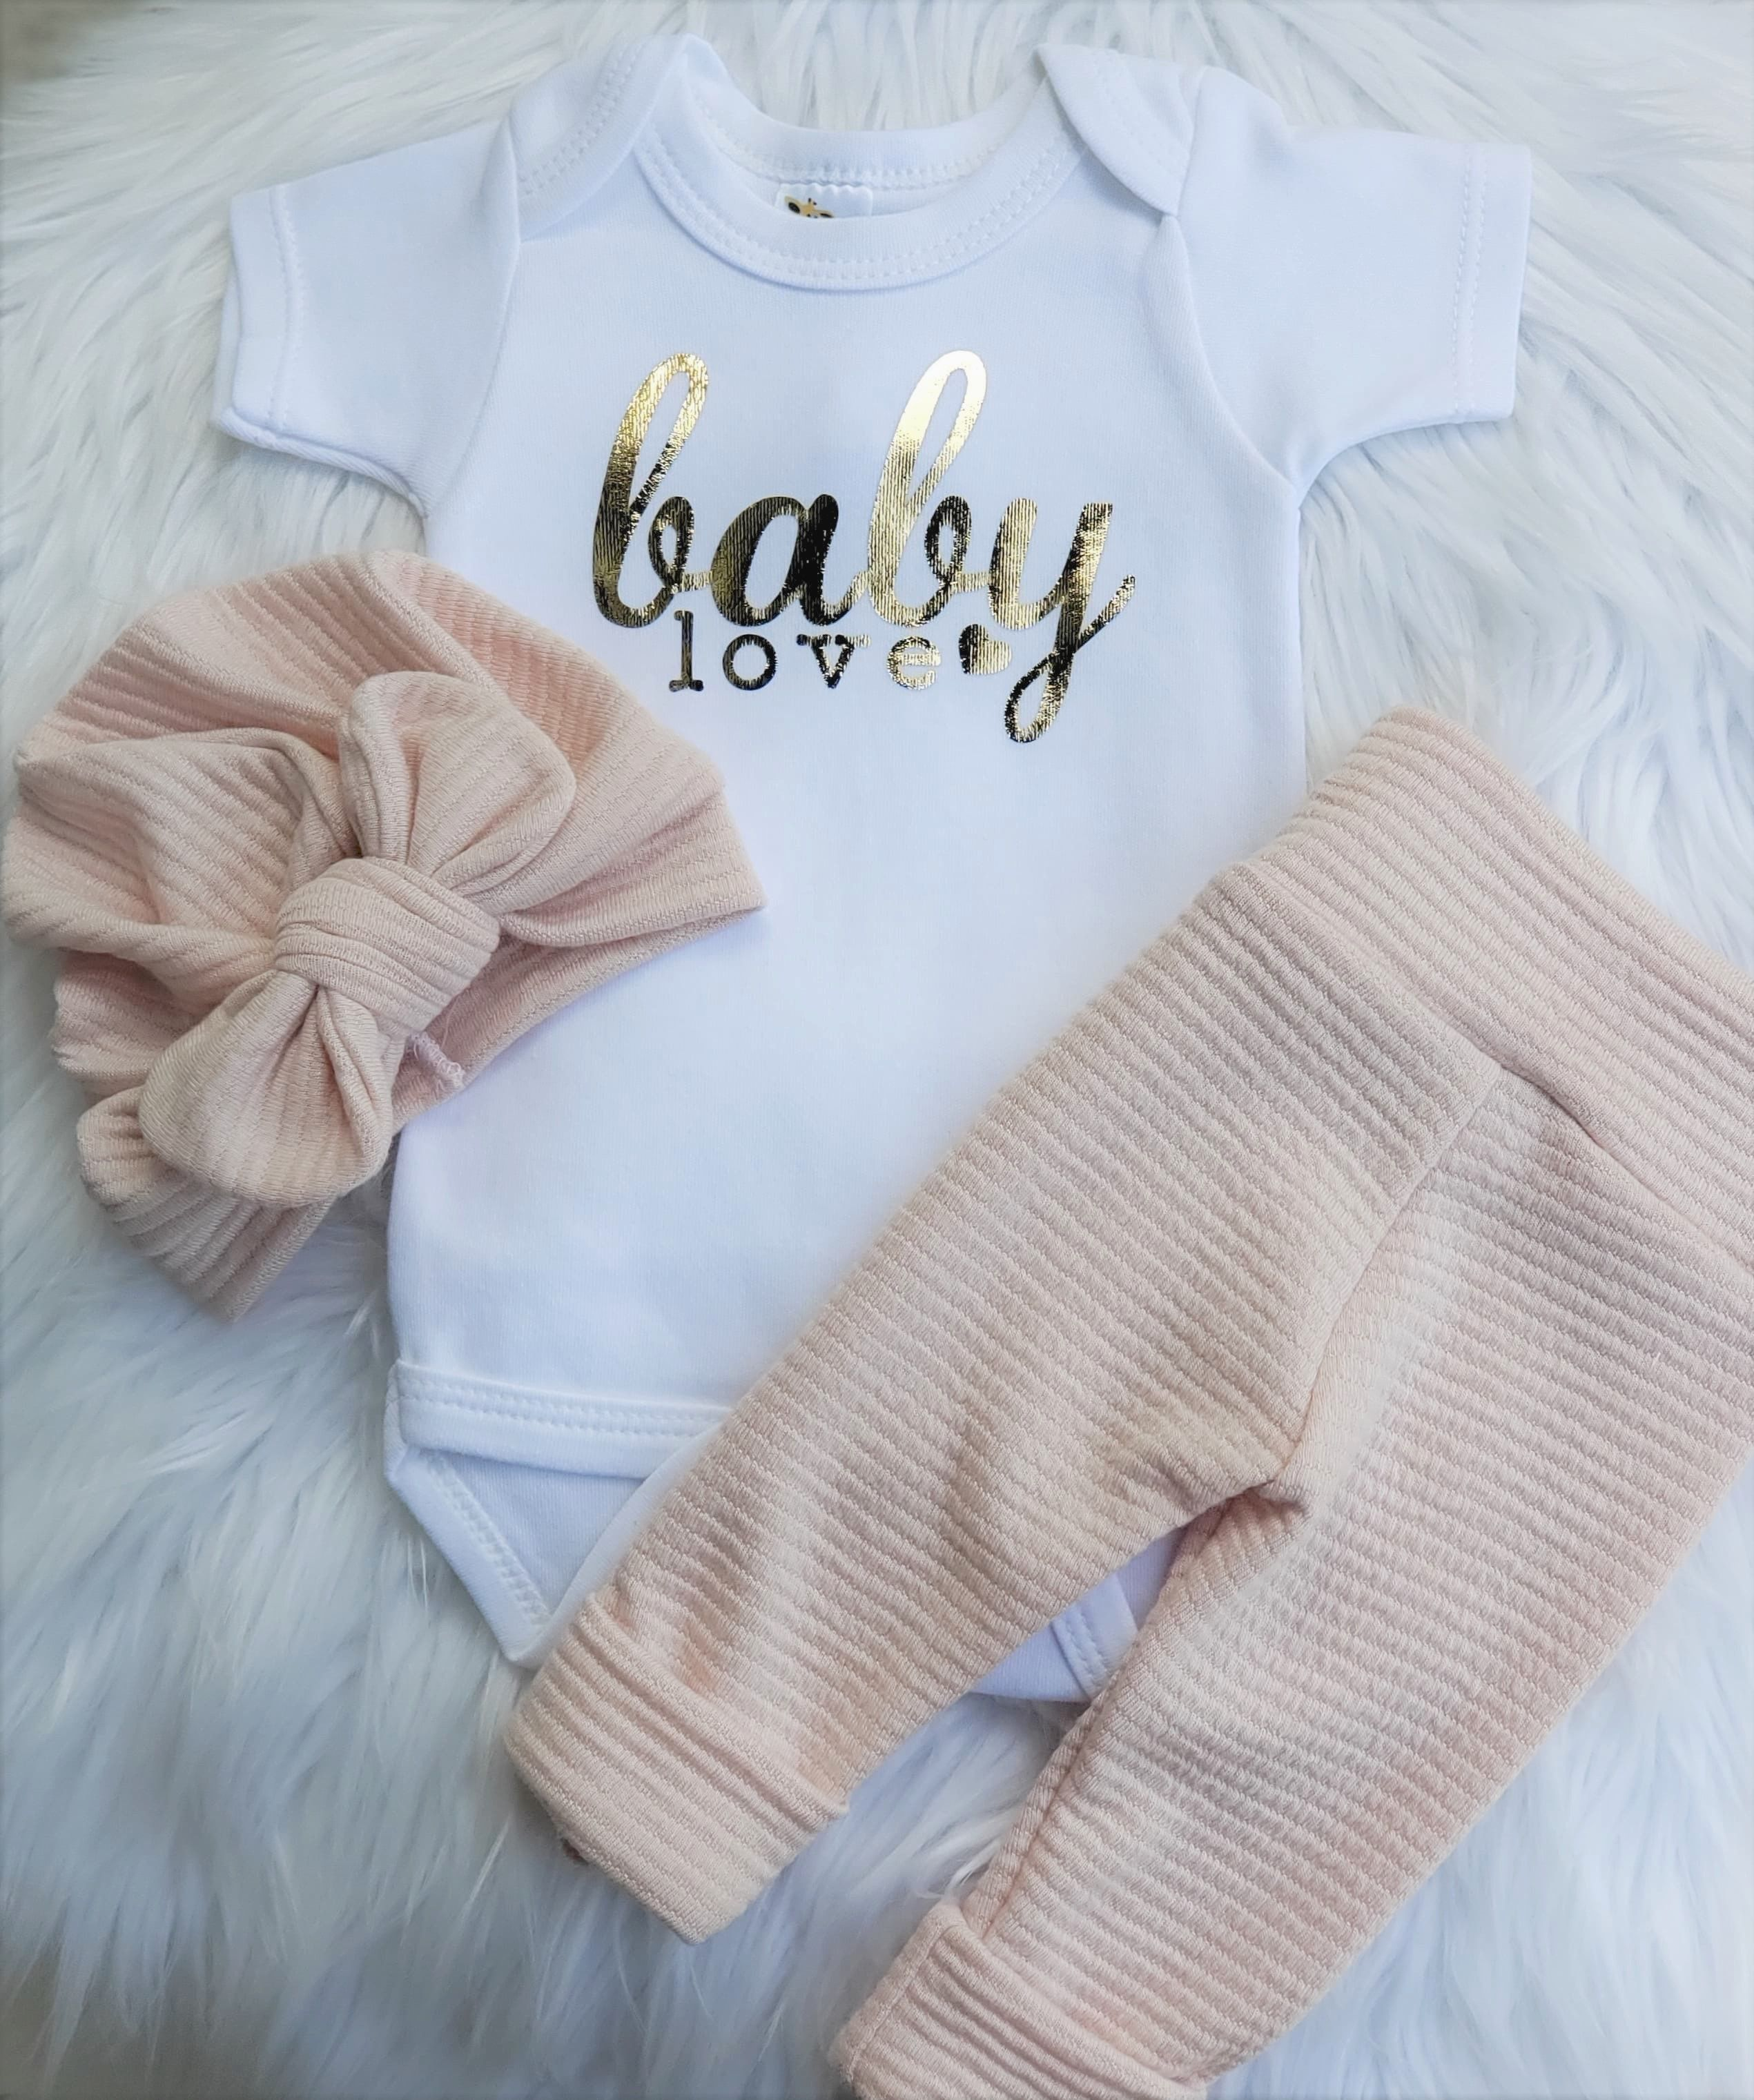 Baby Love Gold Foil Onesie  Shop Baby Boutique Outfits That Are